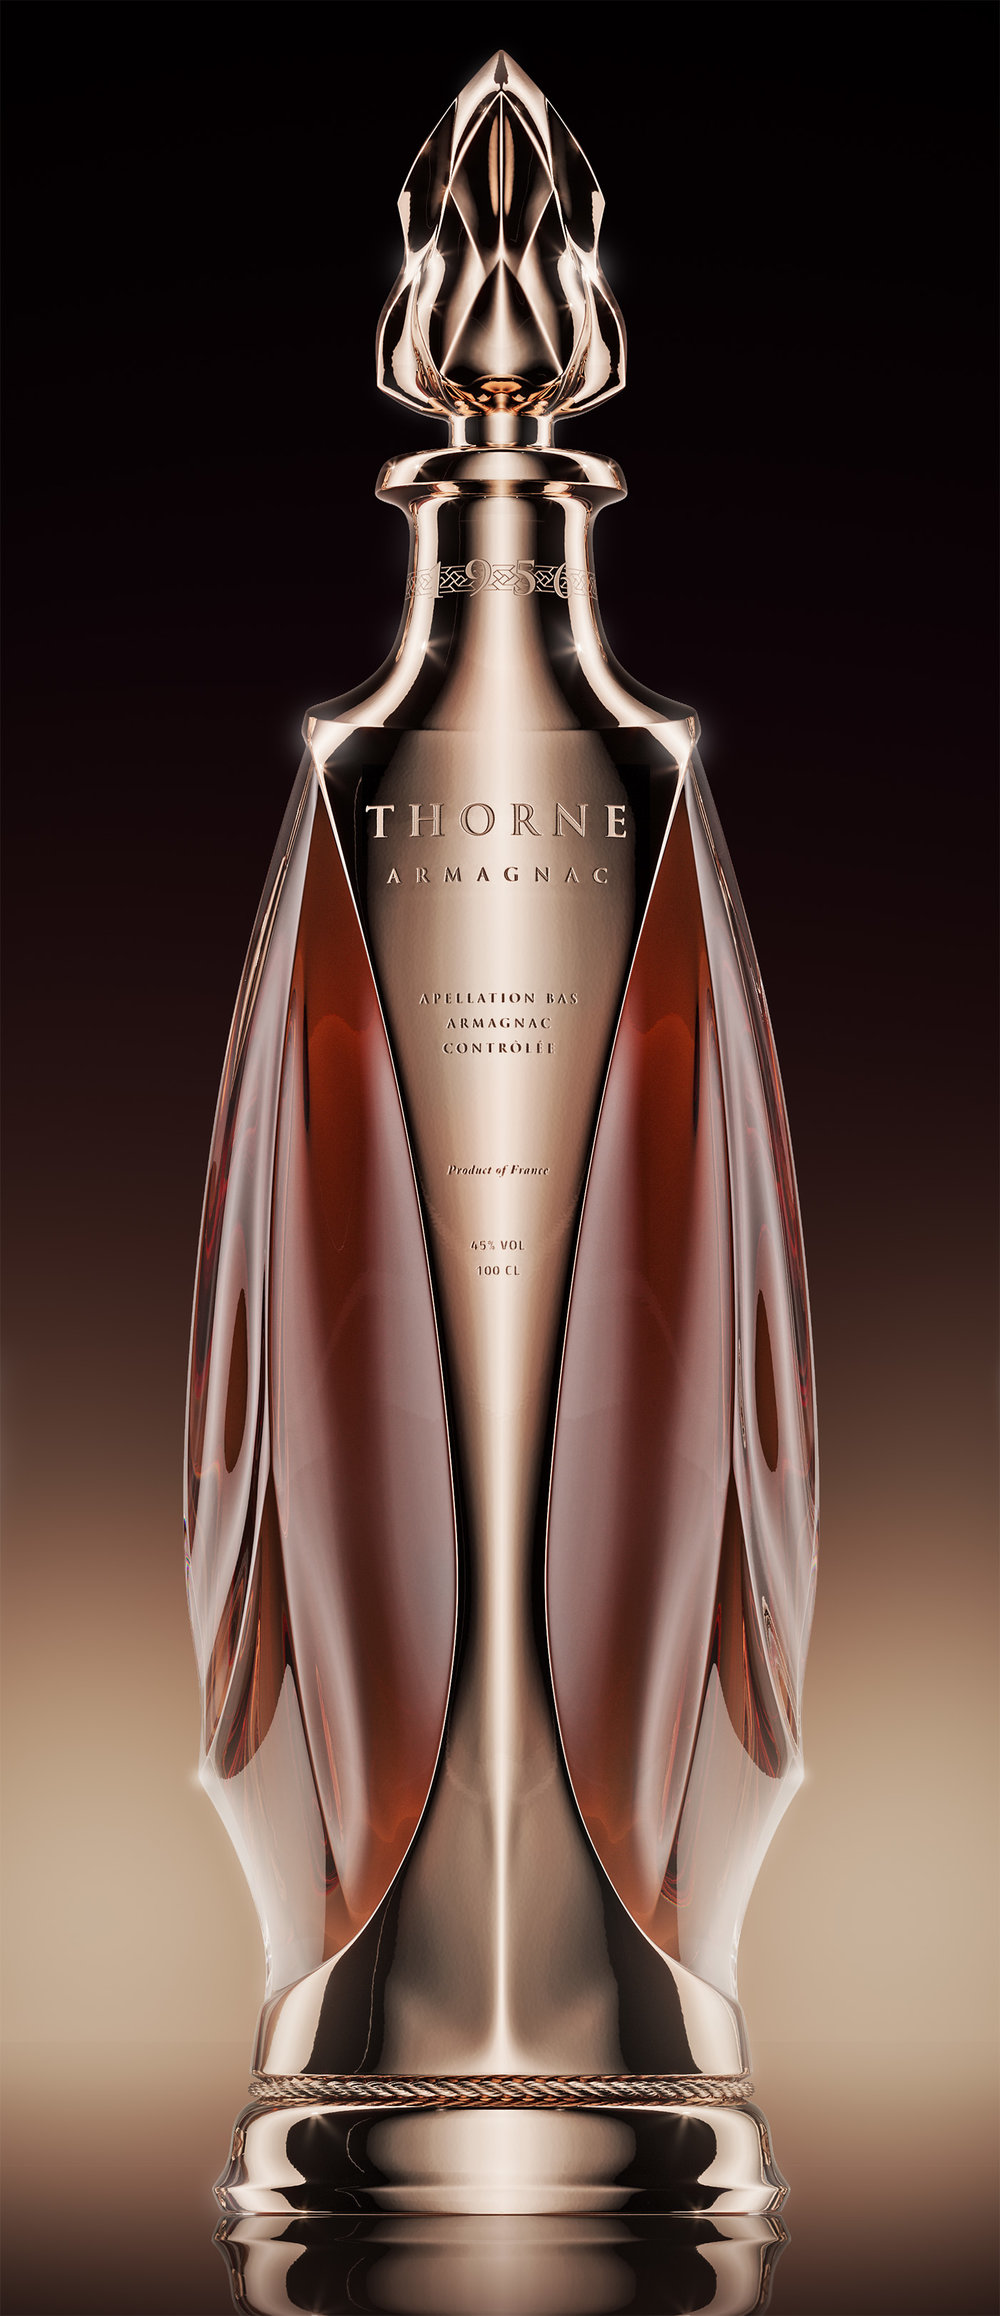 Thorne luxury armagnac bottle 2.jpg